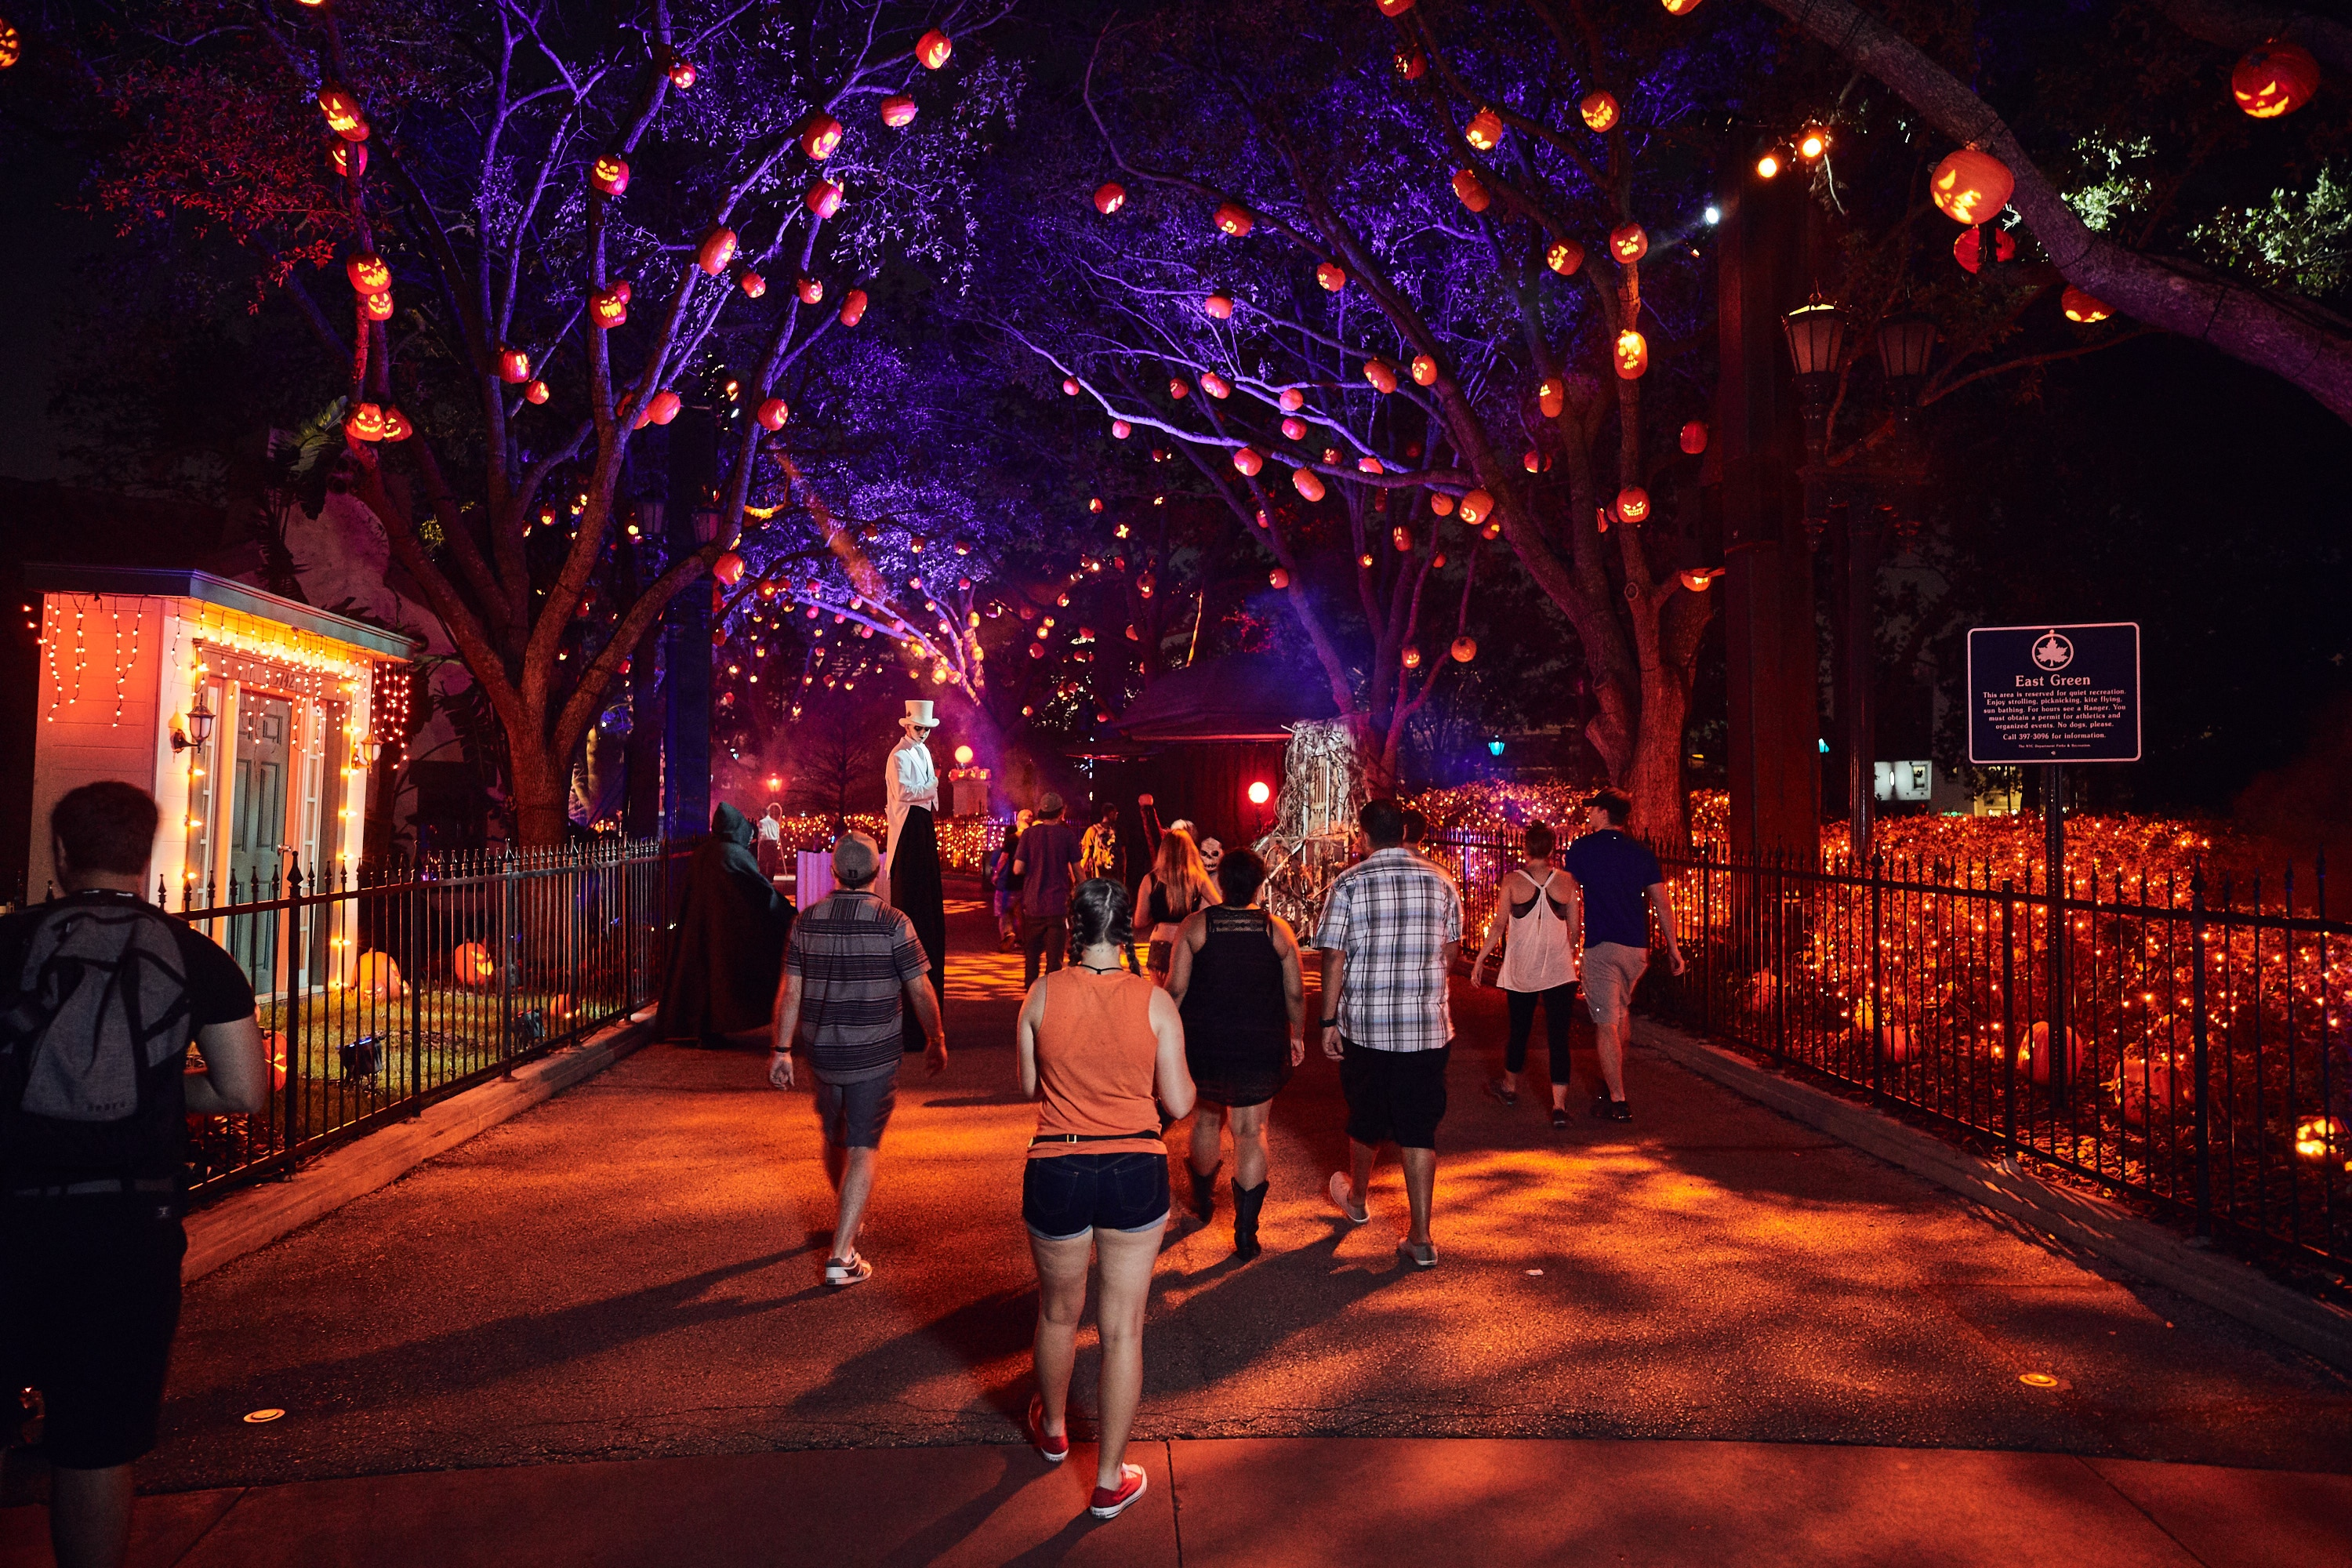 hhn14 Trick r Treat Scare Zone - Universal Orlando Thrills and Terrifies With Halloween Horror Nights 27